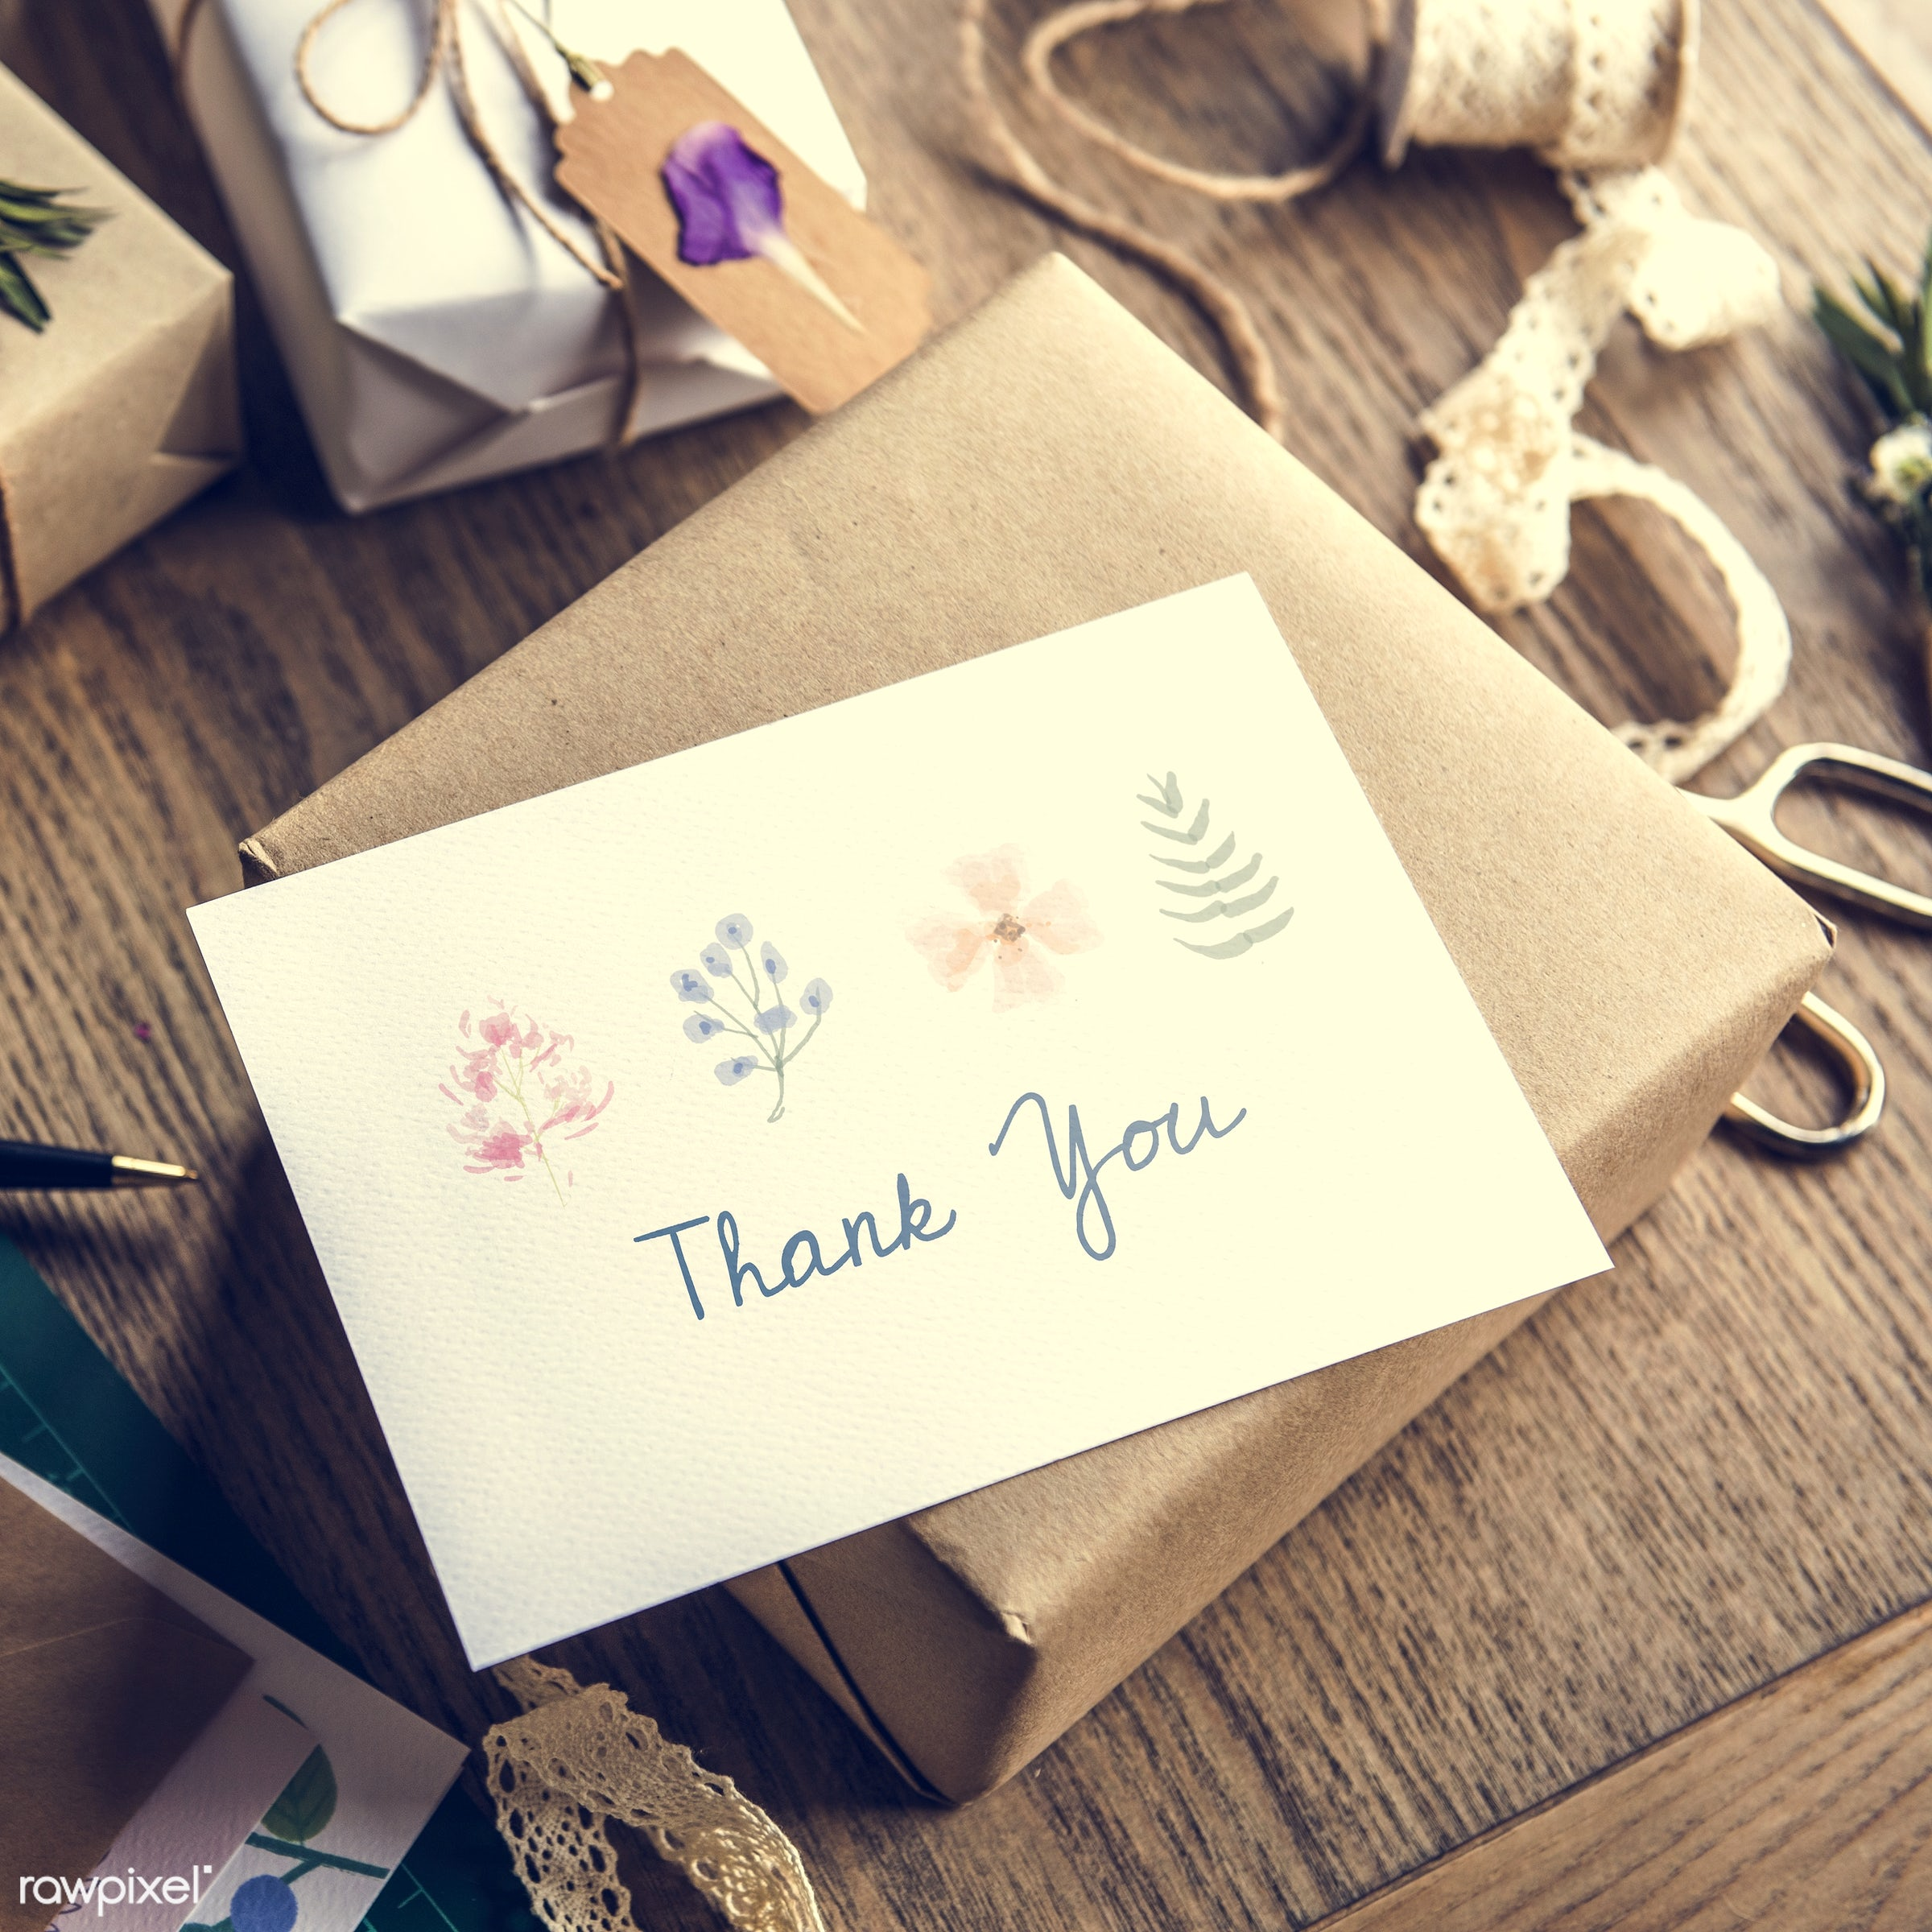 thank you, craft, person, wrapped, wish, handicraft, show, people, dried, rope, ribbon, action, card, flowers, flower, wrap...